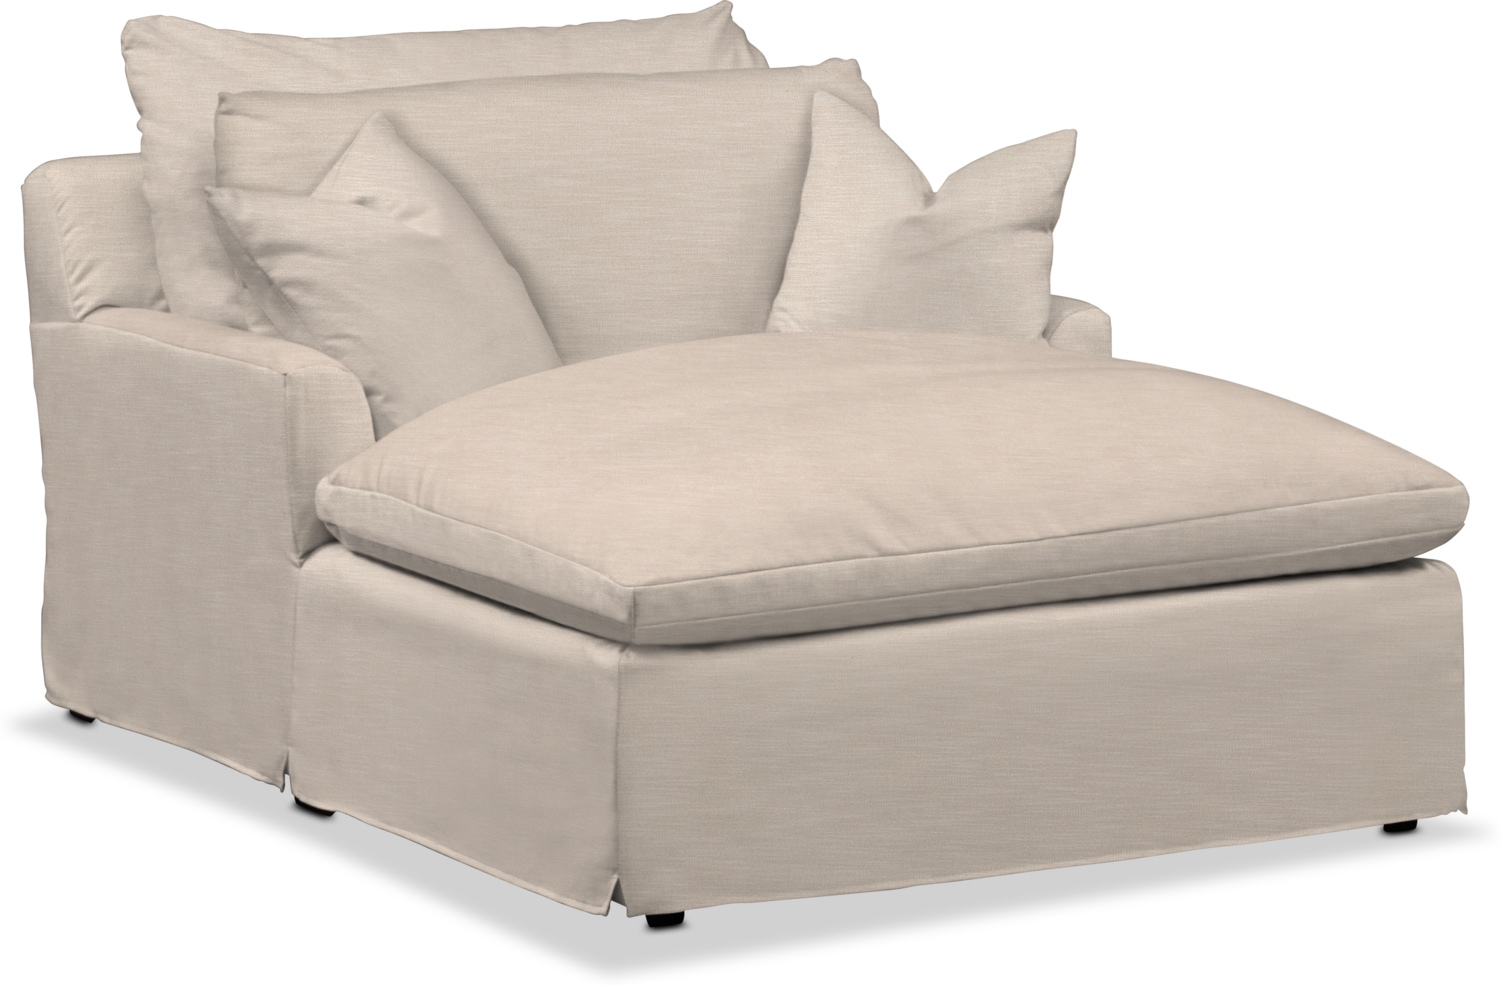 Living Room Furniture - Plush Chaise